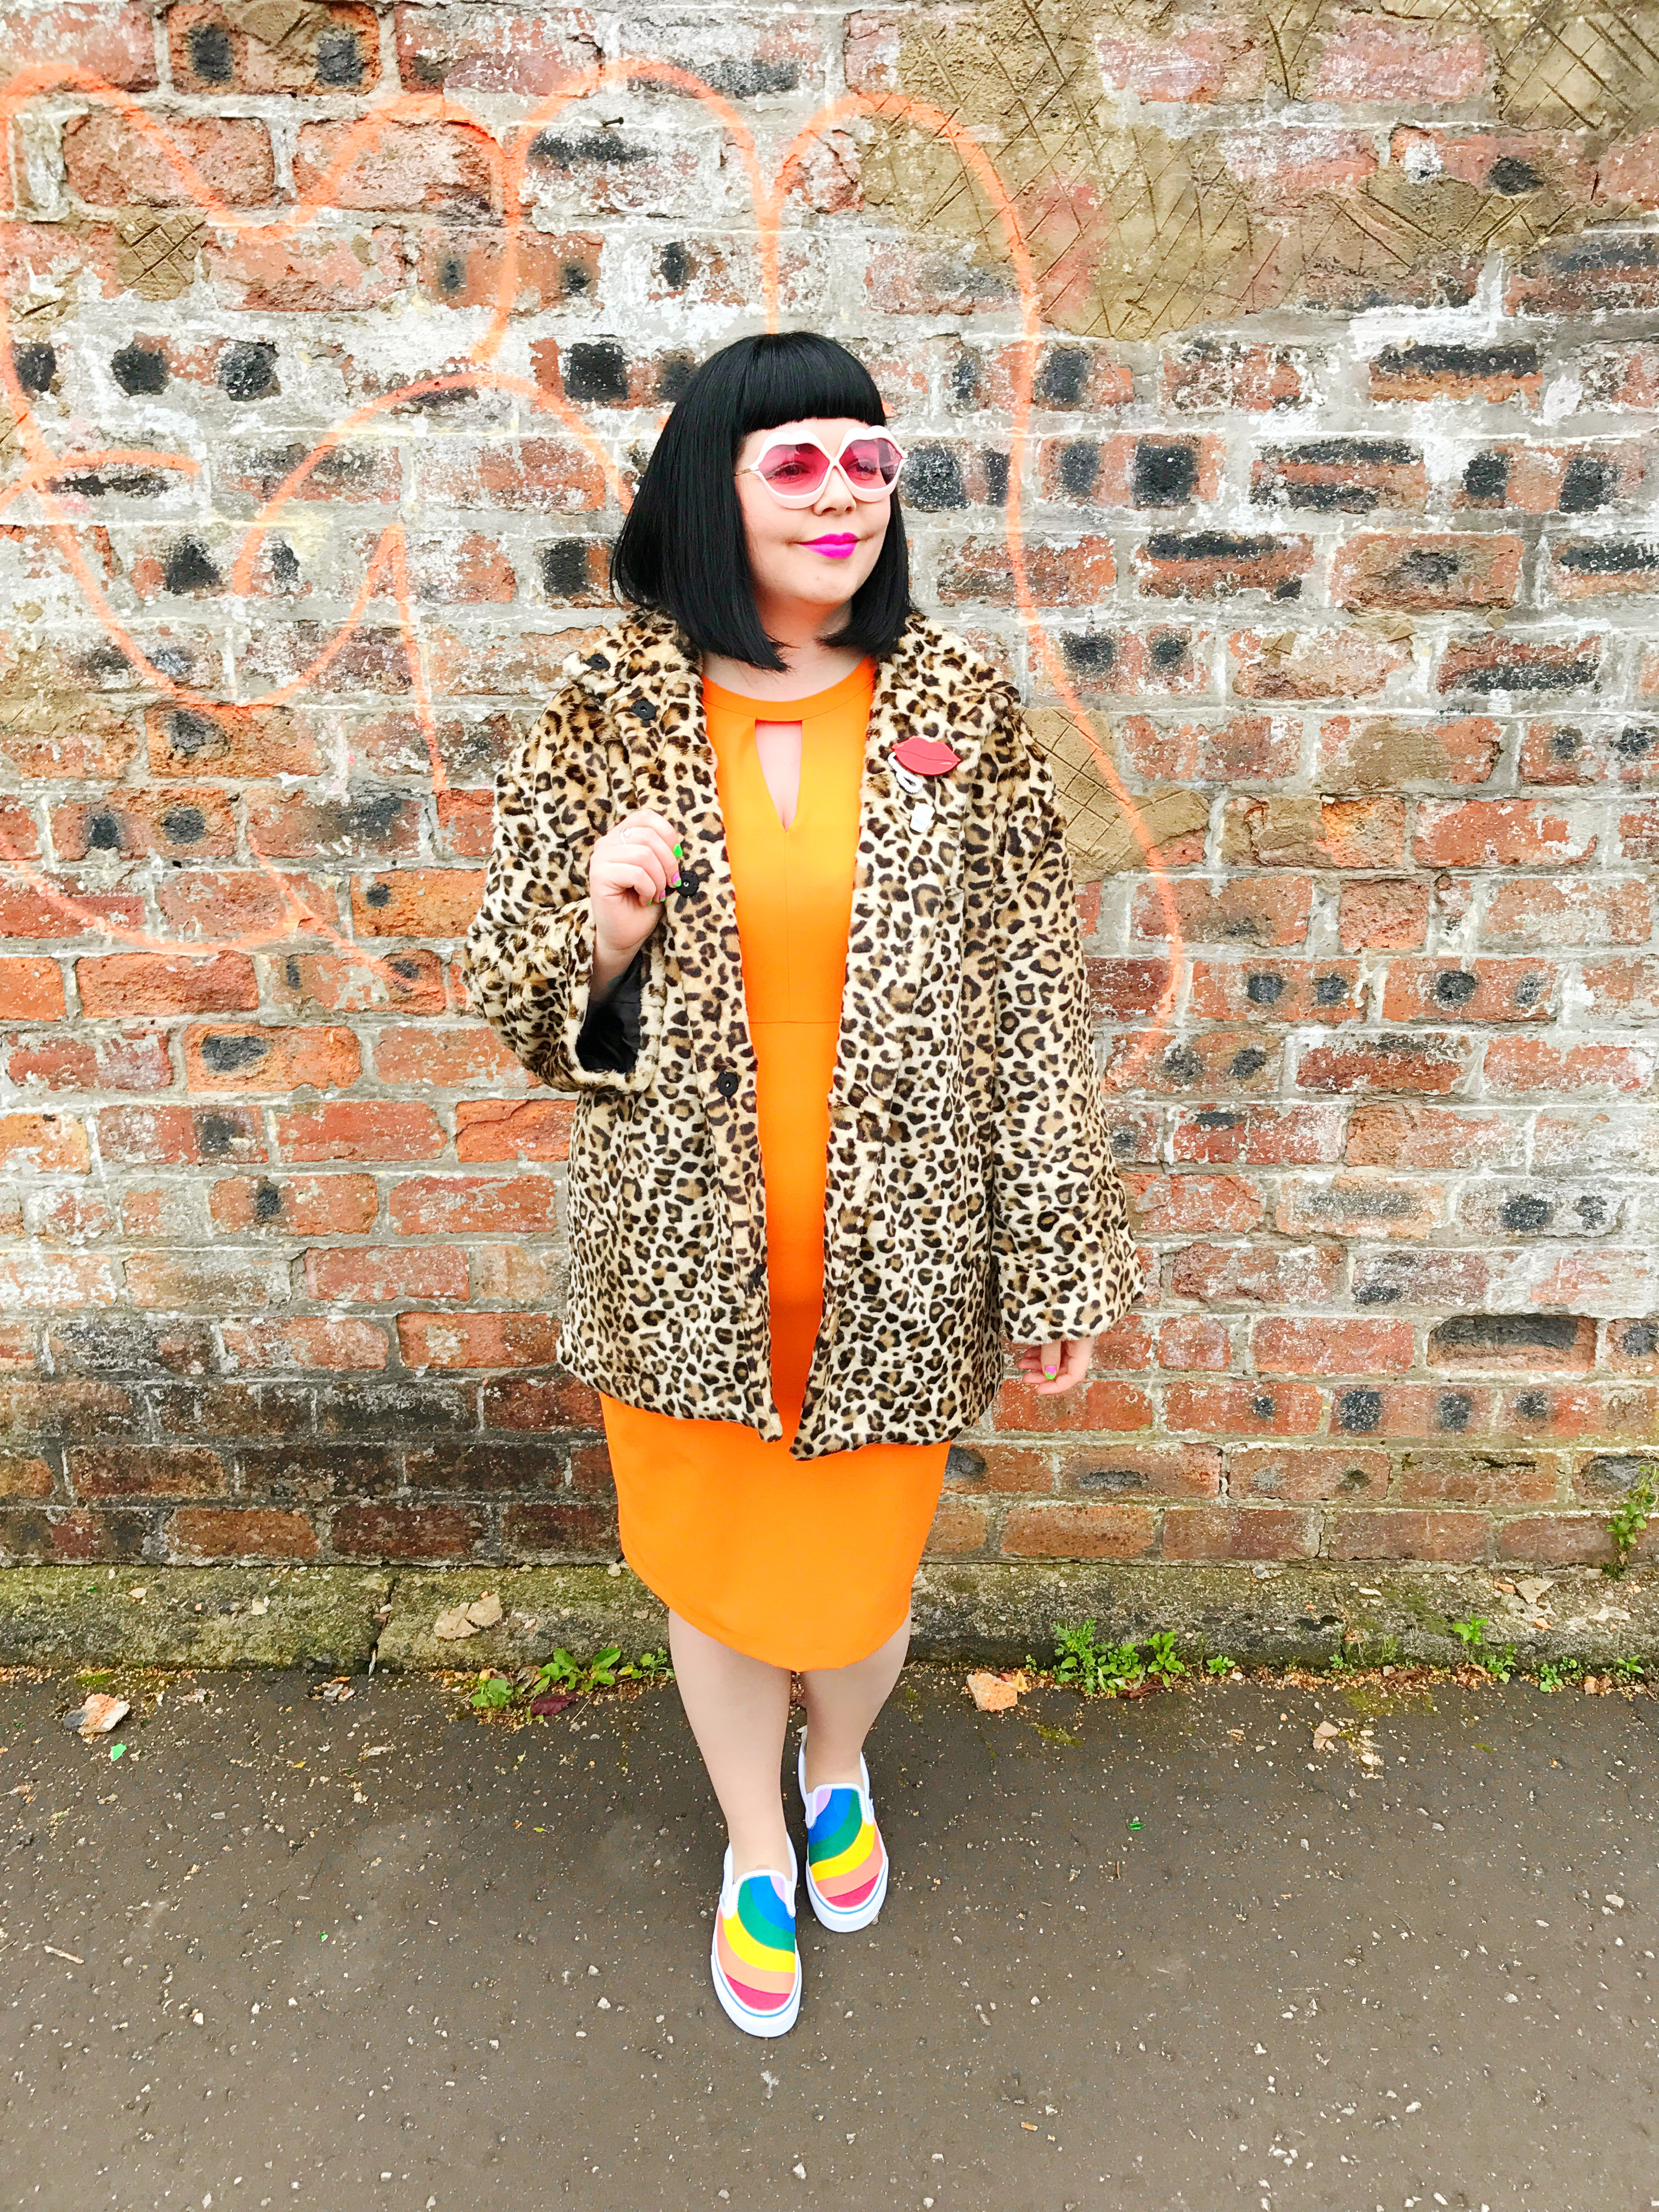 Wrapped up for Autumn in a Leopard Print Coat